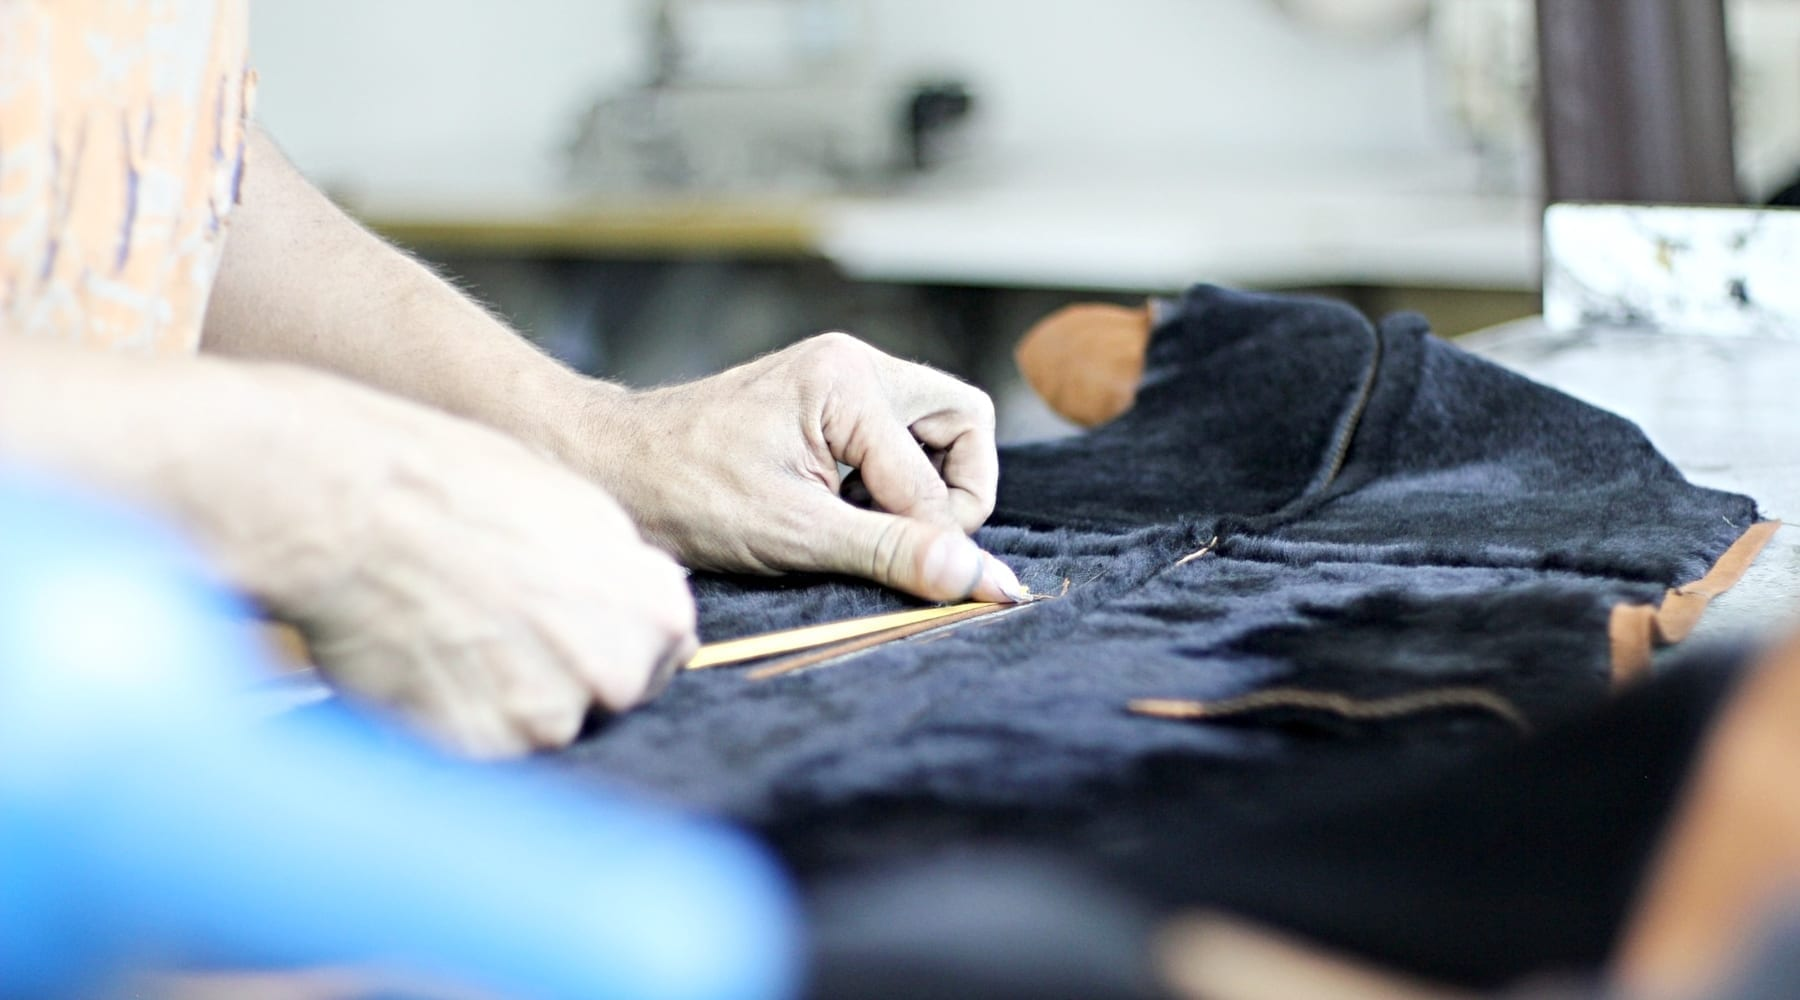 Report: Low Prices Paid by Clothing Brands Drive Production Abuses